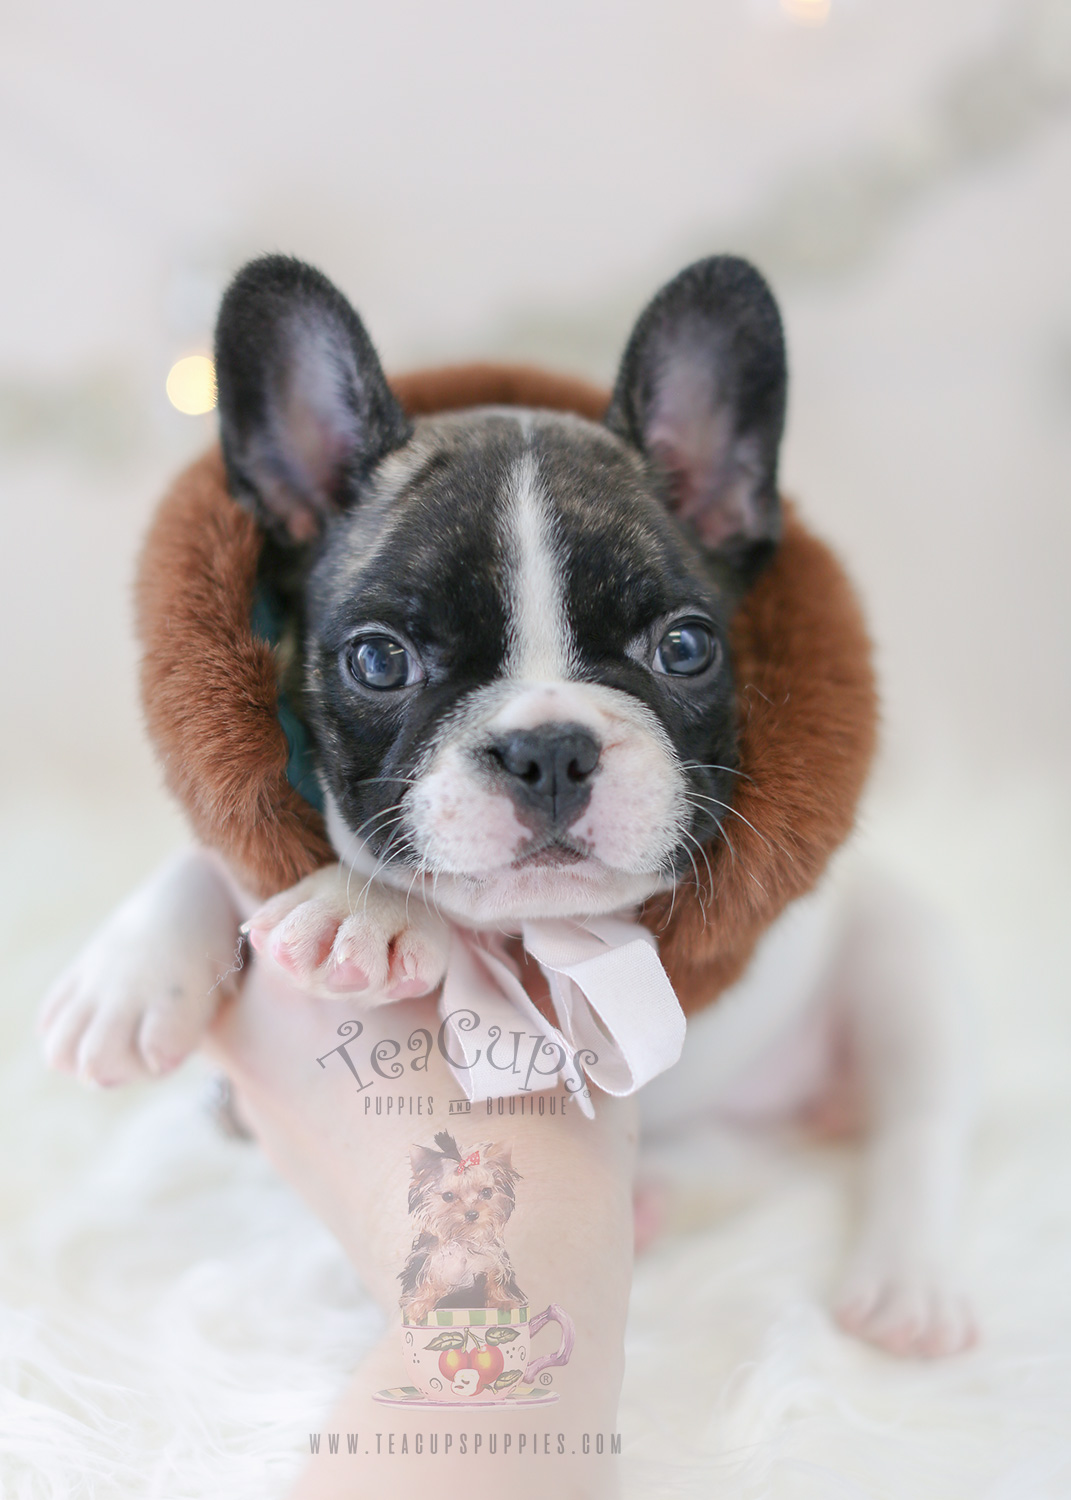 French Bulldog Puppy For Sale #302 Teacup Puppies